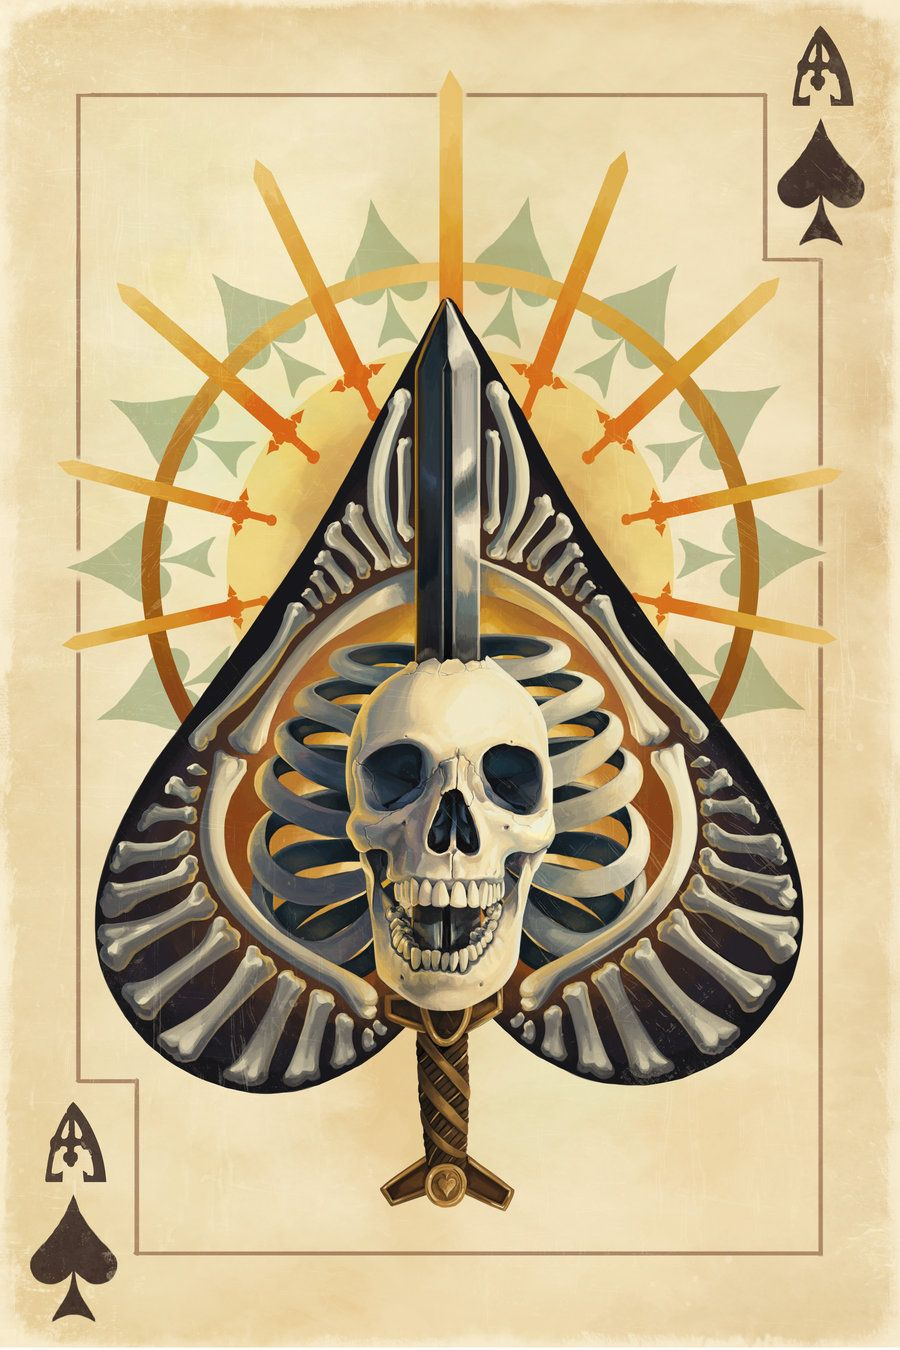 Playing Cards - Ace Of Spades, Playing Cards by Chronoperates on @deviantART - playingcards, playingcardsart, playingcardsforsale, playingcardswiththefamily, playingcardswithfamily, playingcardsgame, playingcardscollection, playingcardstorage, playingcardset, playingcardsproject, cardscollector, playingcard, design, illustration, cards, cardist